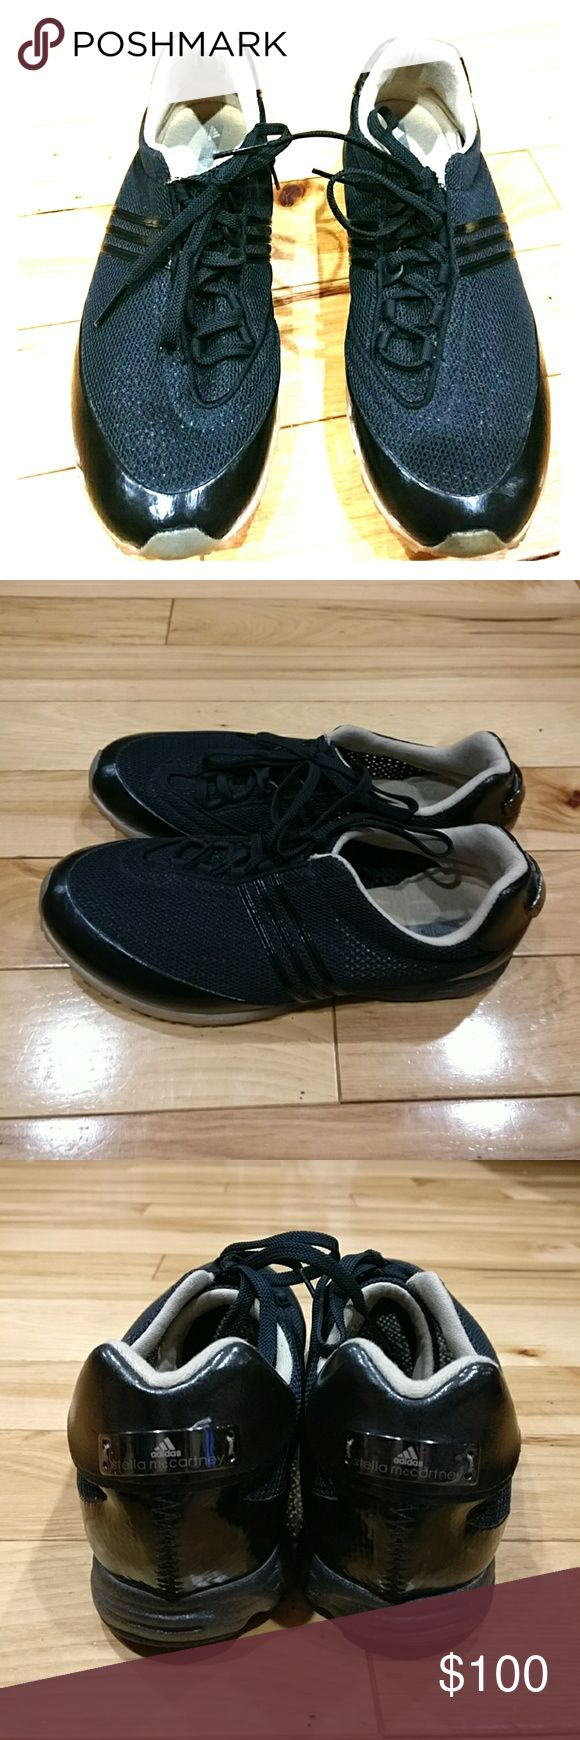 Stella McCarthy Adidas Adiprene torsion trainer 8 Stella McCartney Adidas Adiprene torsion trainer size 8 black color. they are in excellent condition. I'm selling them at a great price so get them today yeah! Adidas by Stella McCartney Shoes